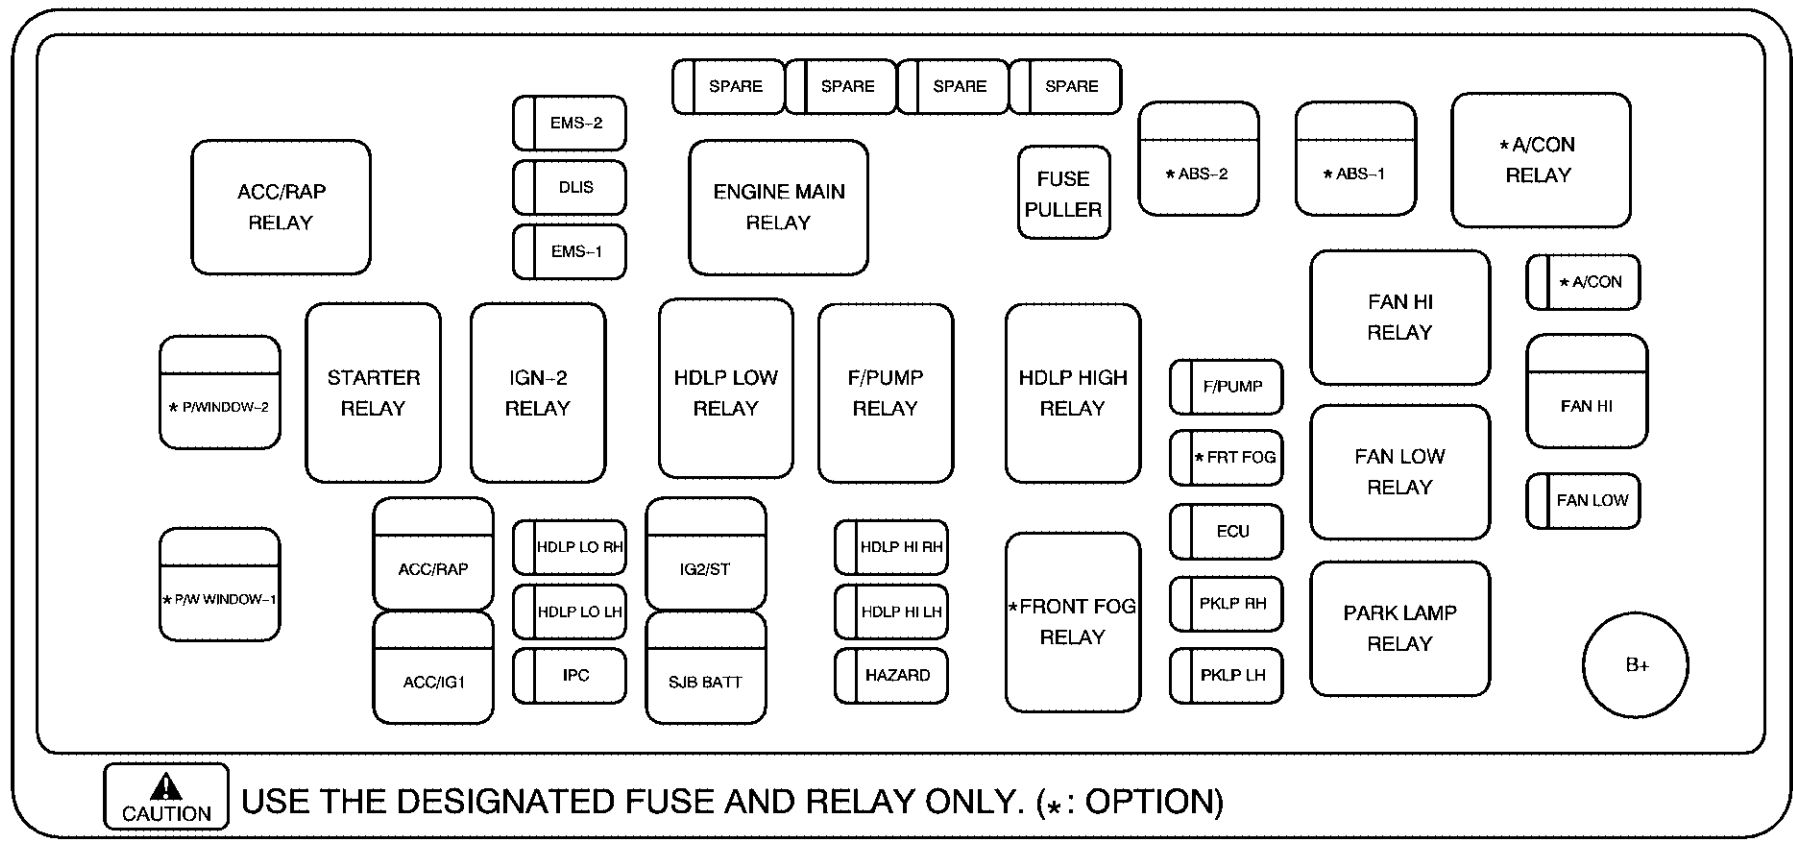 hight resolution of 2009 chevy aveo fuse diagram wiring diagram used chevrolet aveo 2011 fuse box